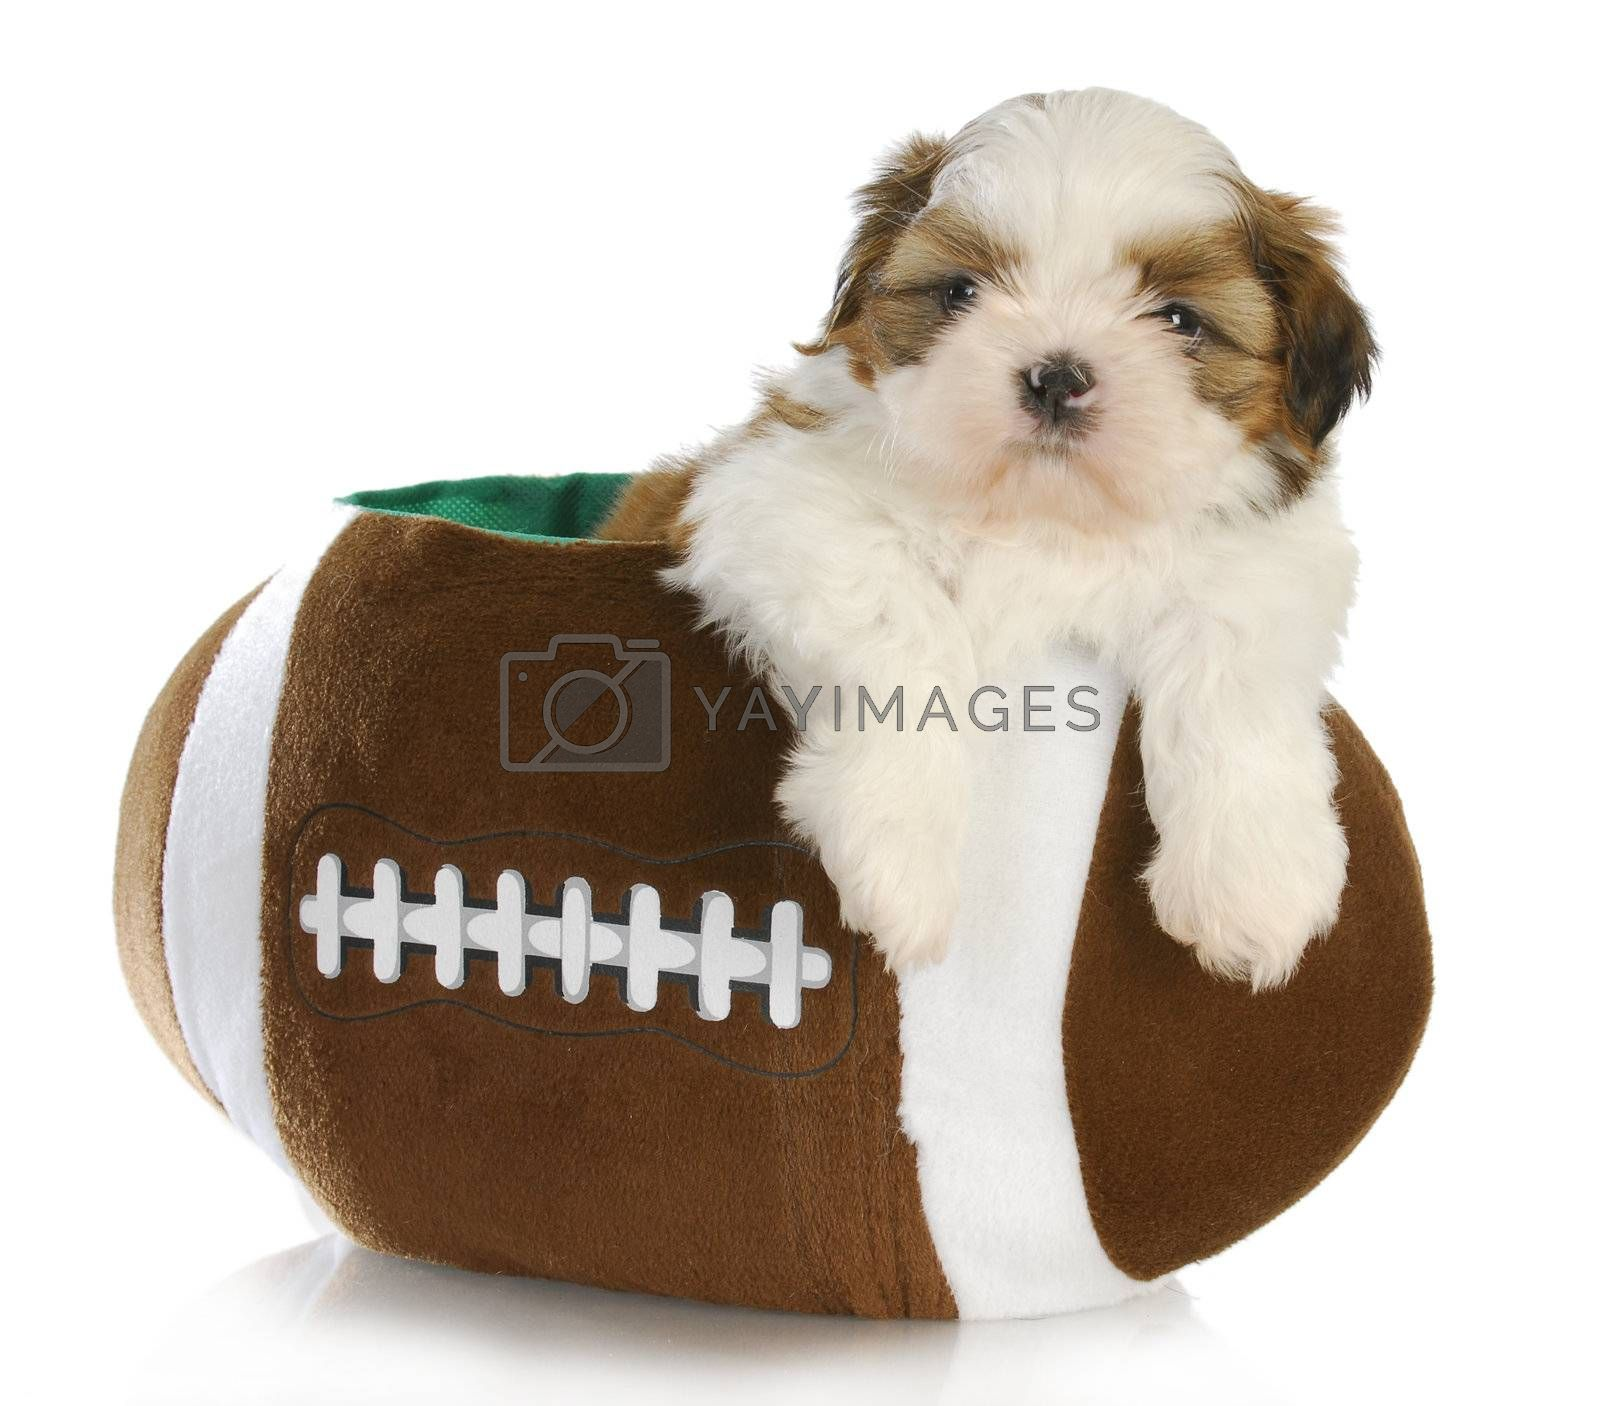 cute puppy - shih tzu puppy sitting inside a stuffed football - 6 weeks old